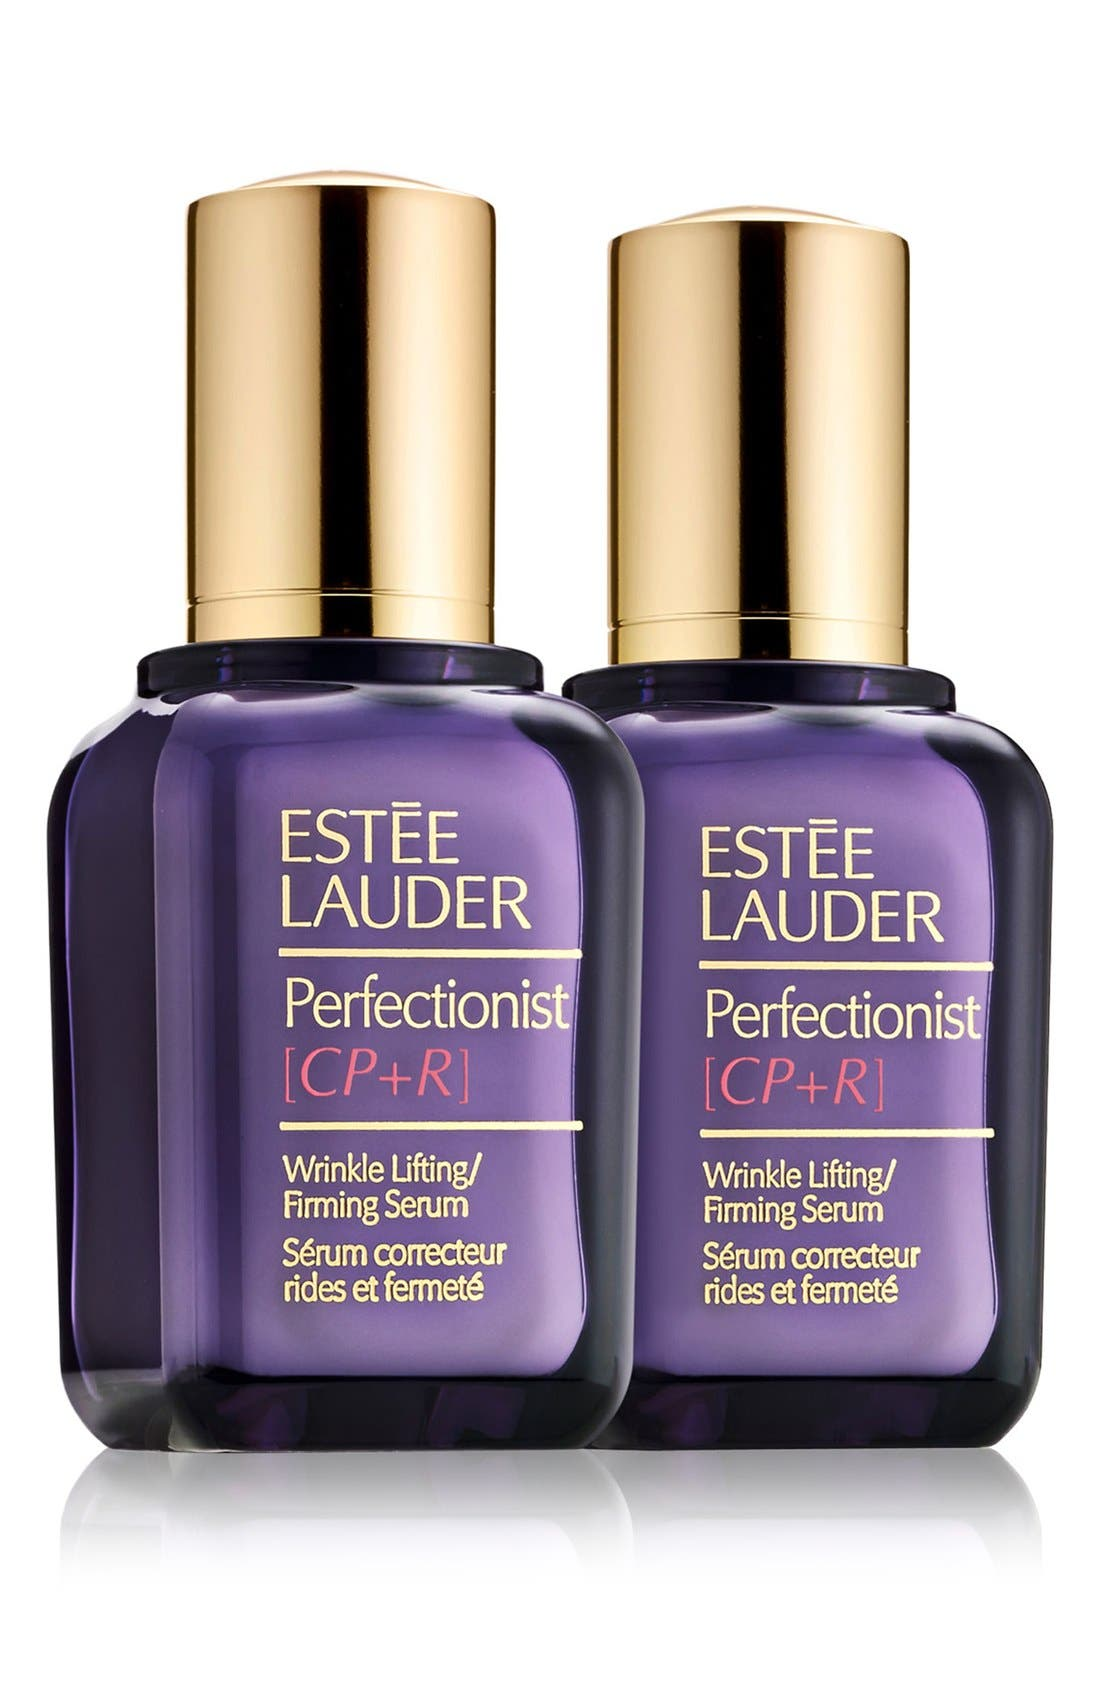 Perfectionist [Cp+R] Wrinkle Lifting/firming Serum Duo